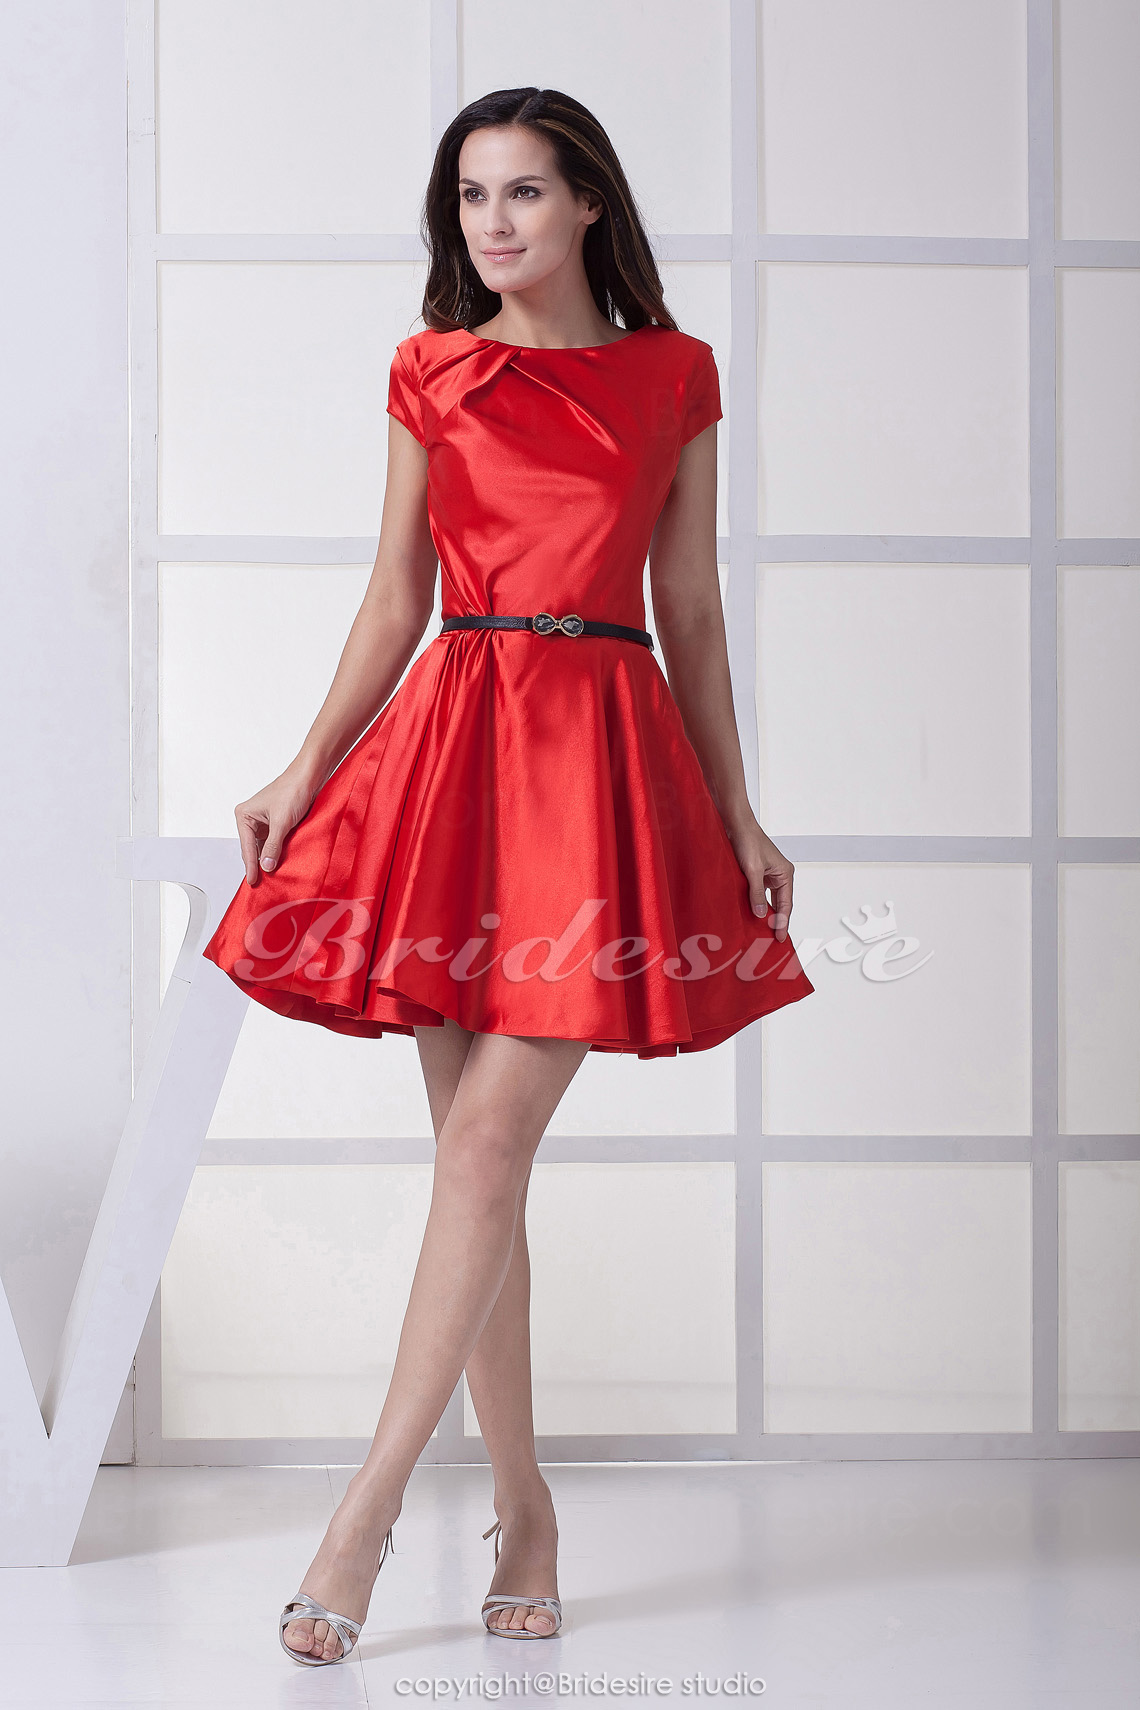 A-line Scoop Short/Mini Short Sleeve Stretch Satin Bridesmaid Dress